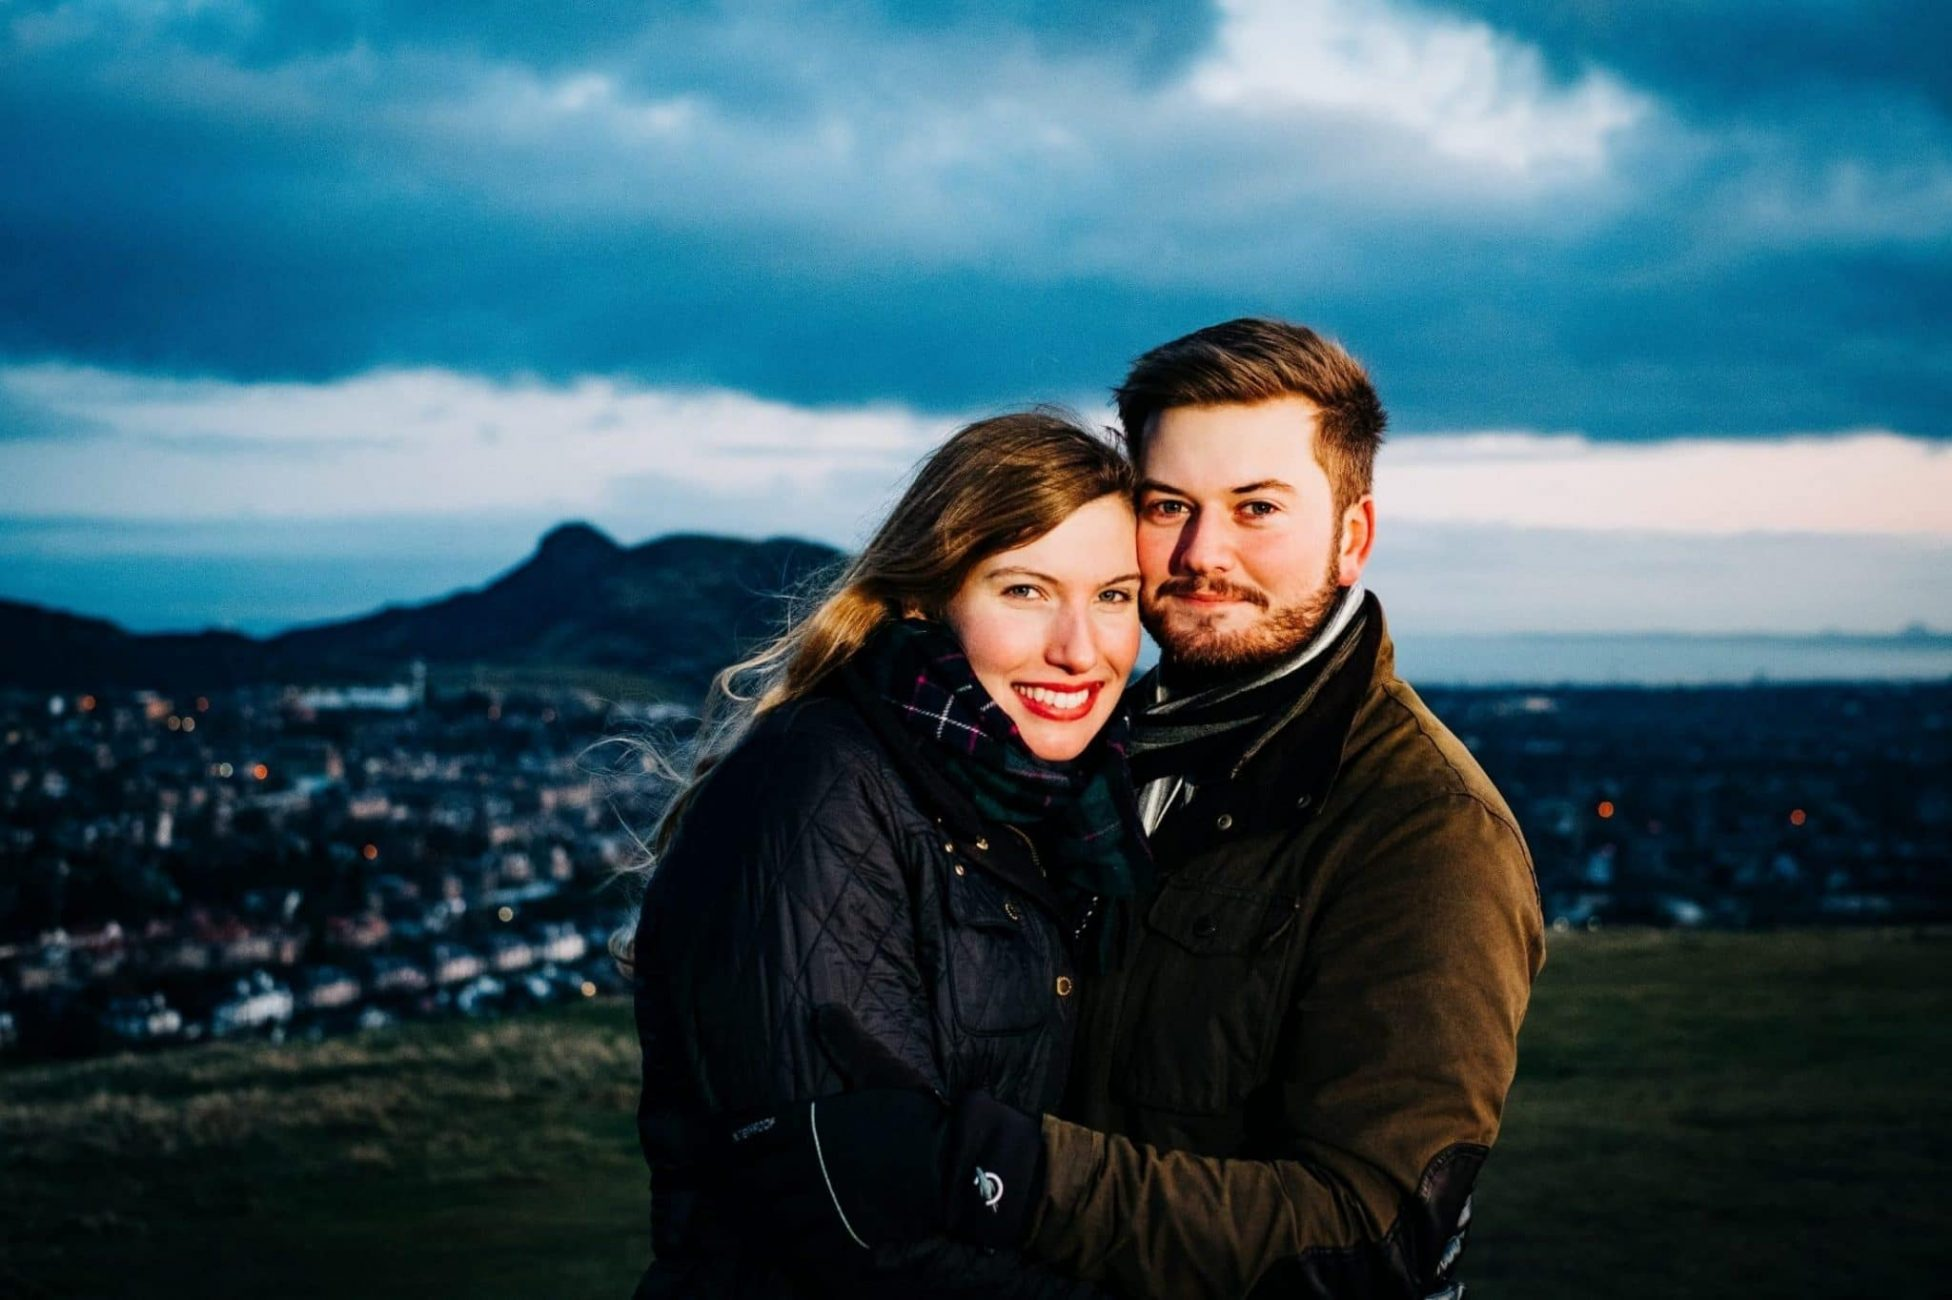 An engagement portrait of a couple in Edinburgh